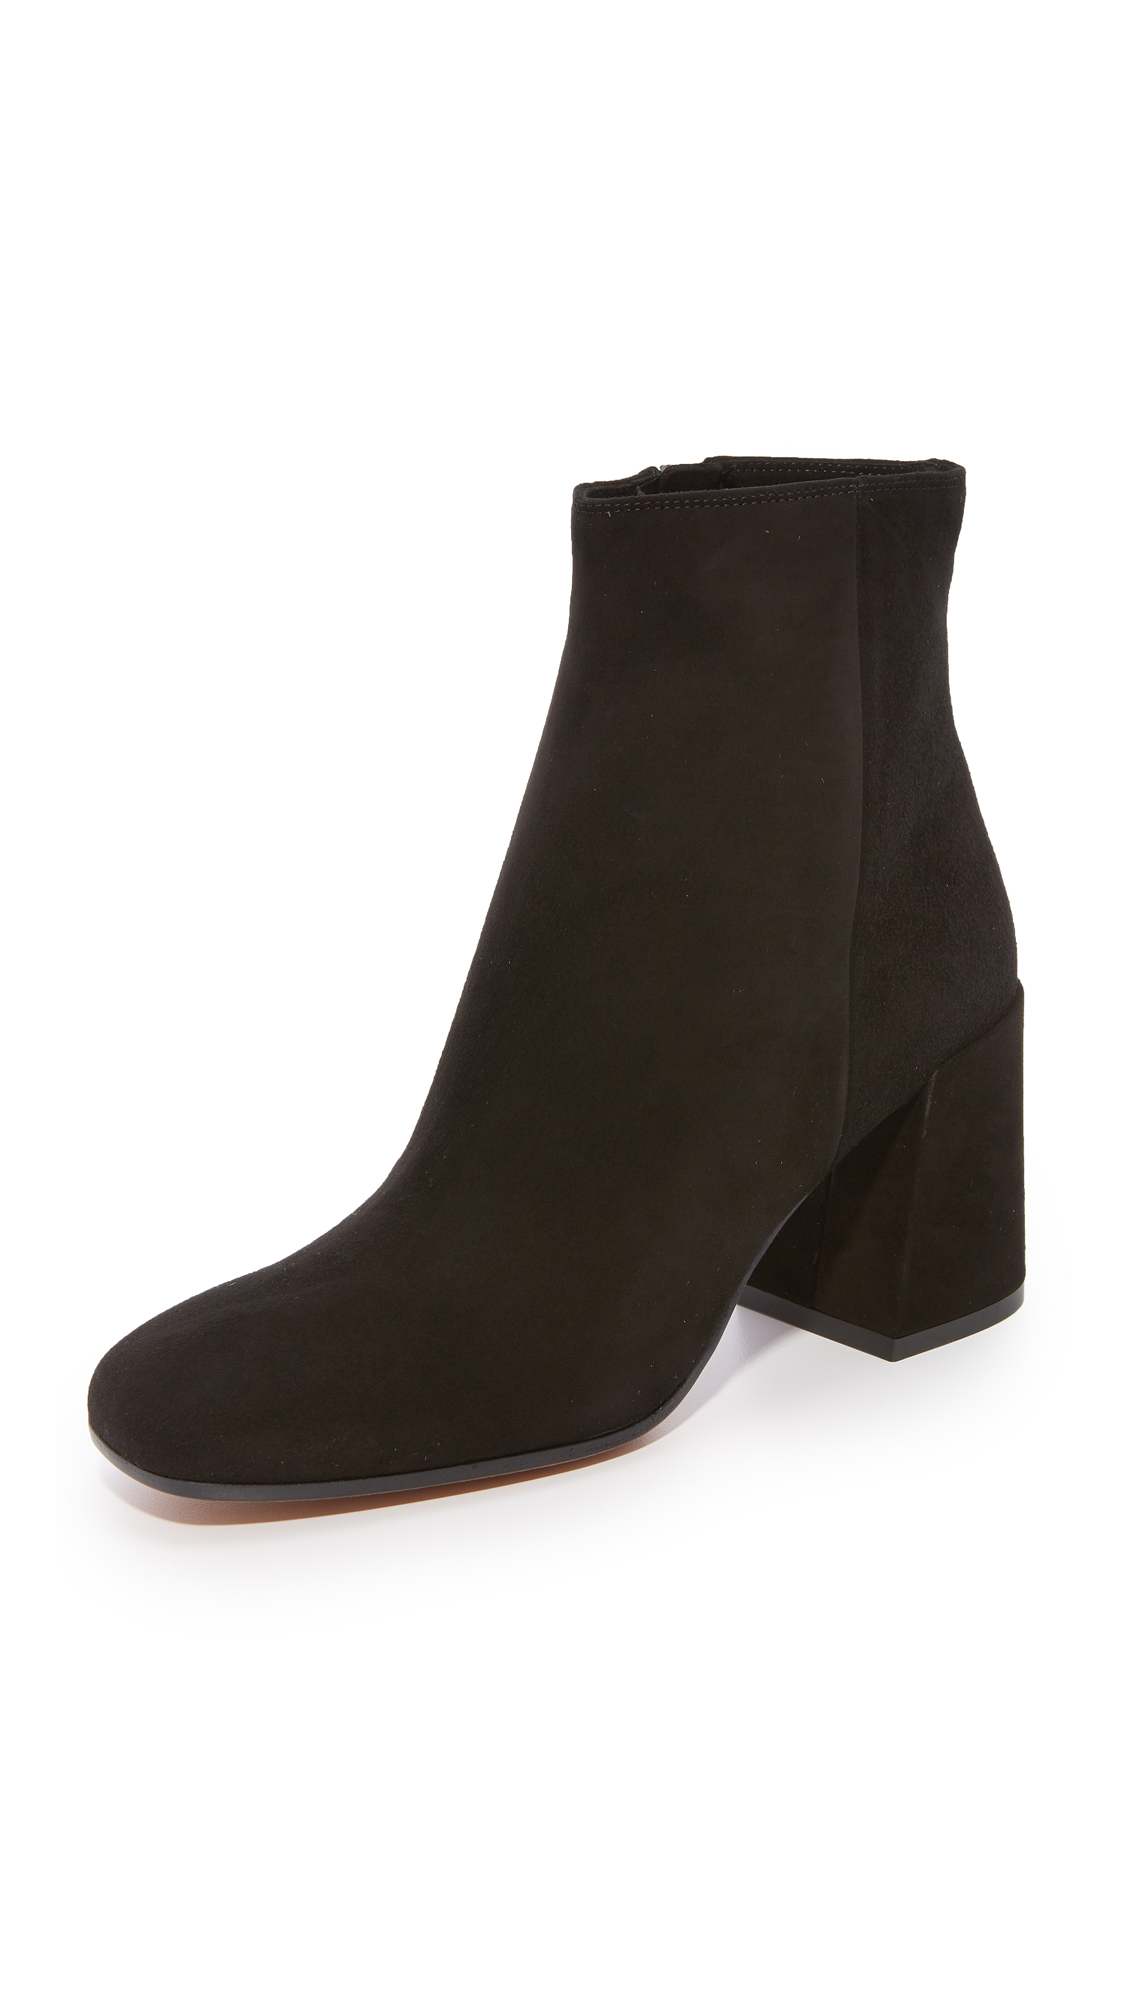 Vince Highbury Classic Square Toe Ankle Booties - Black